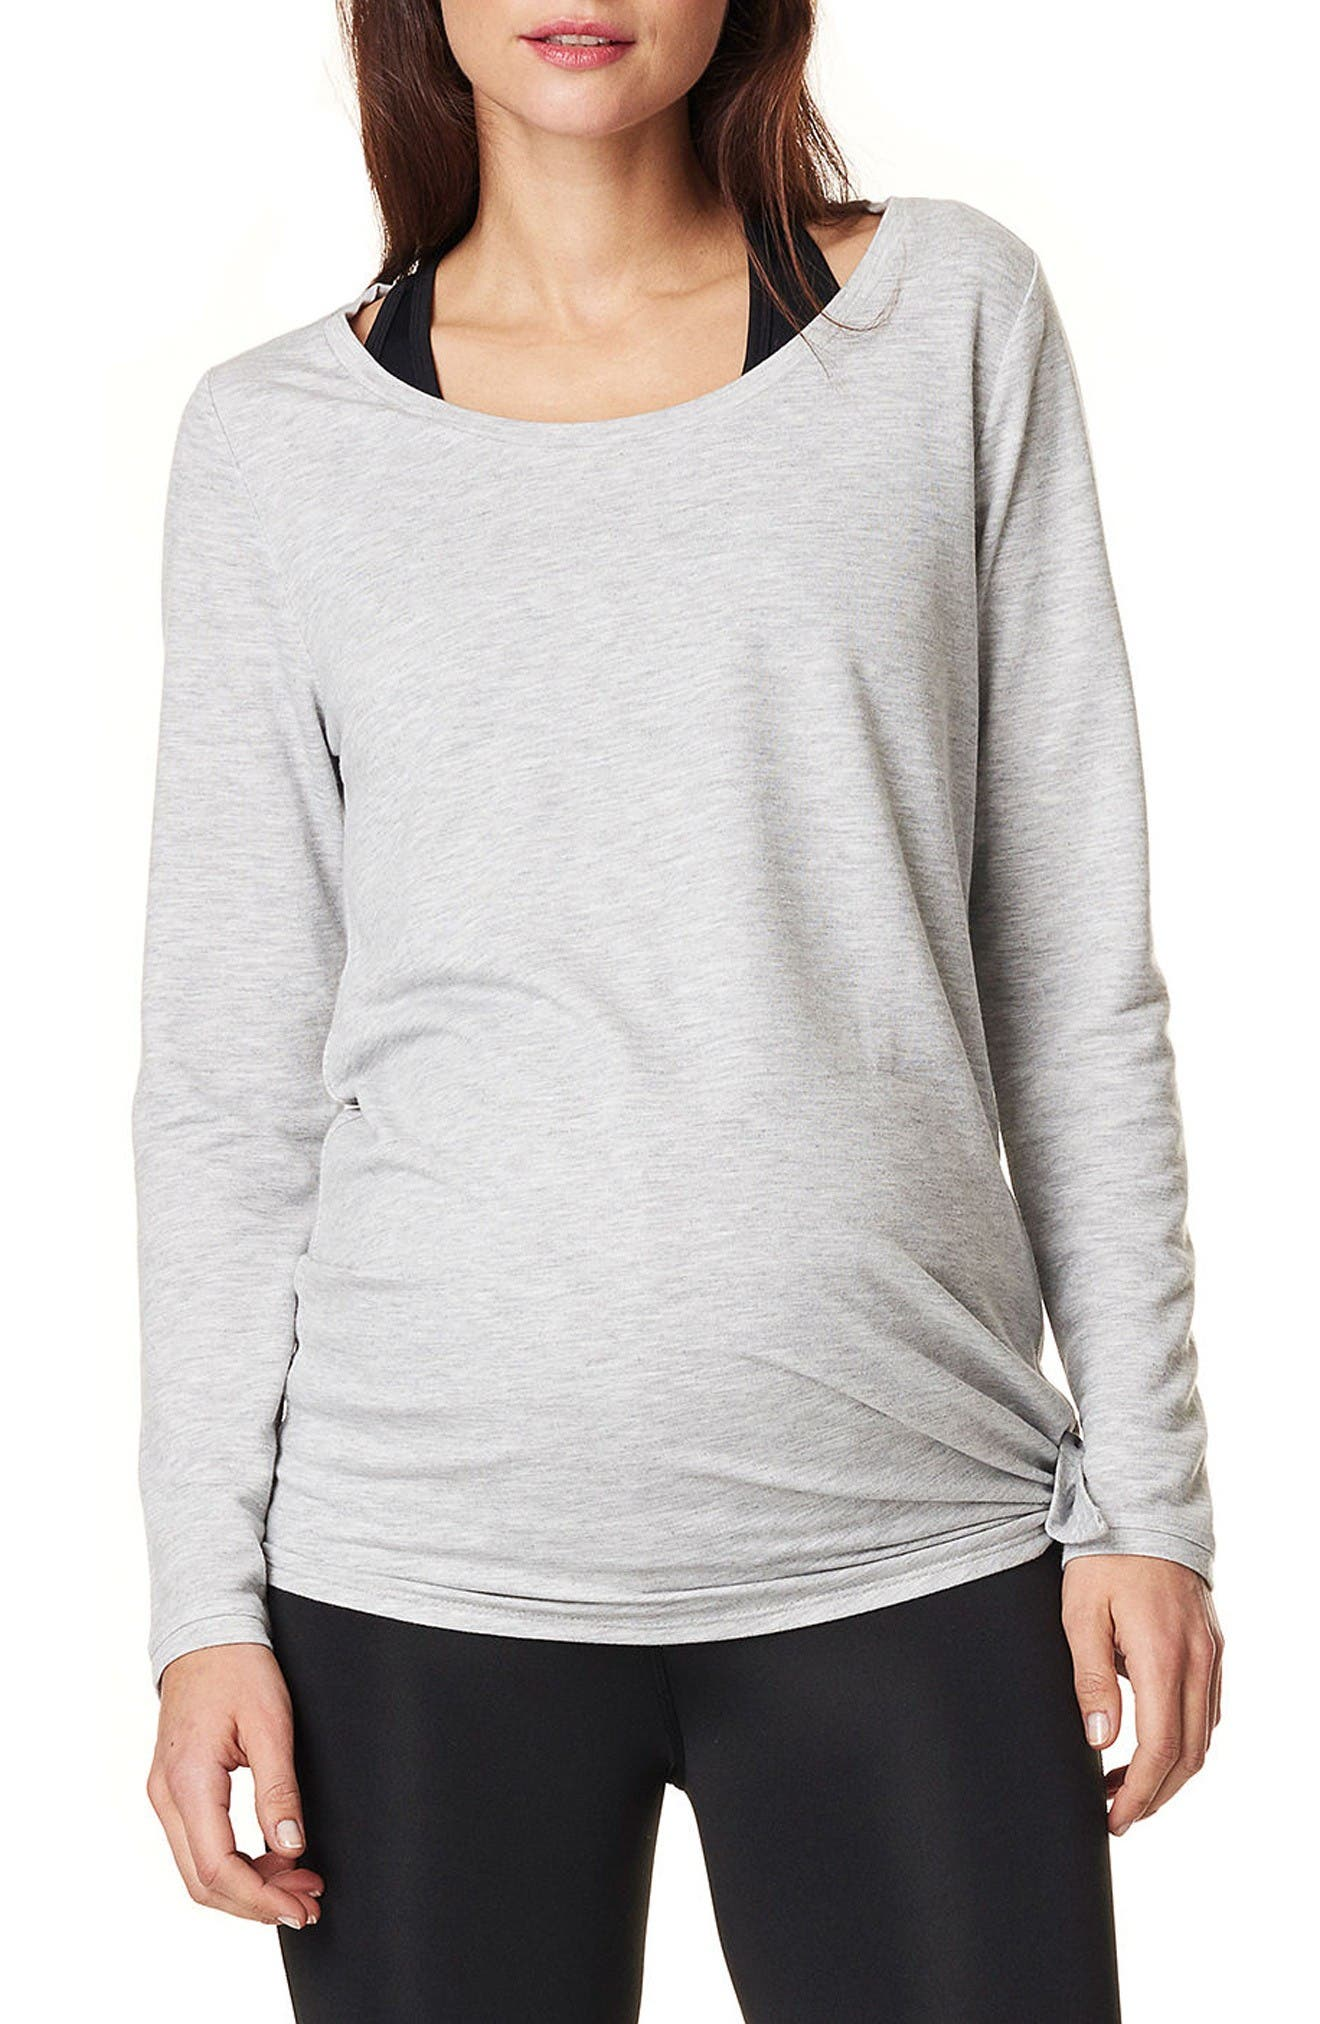 Main Image - Noppies Heather Athletic Maternity Top